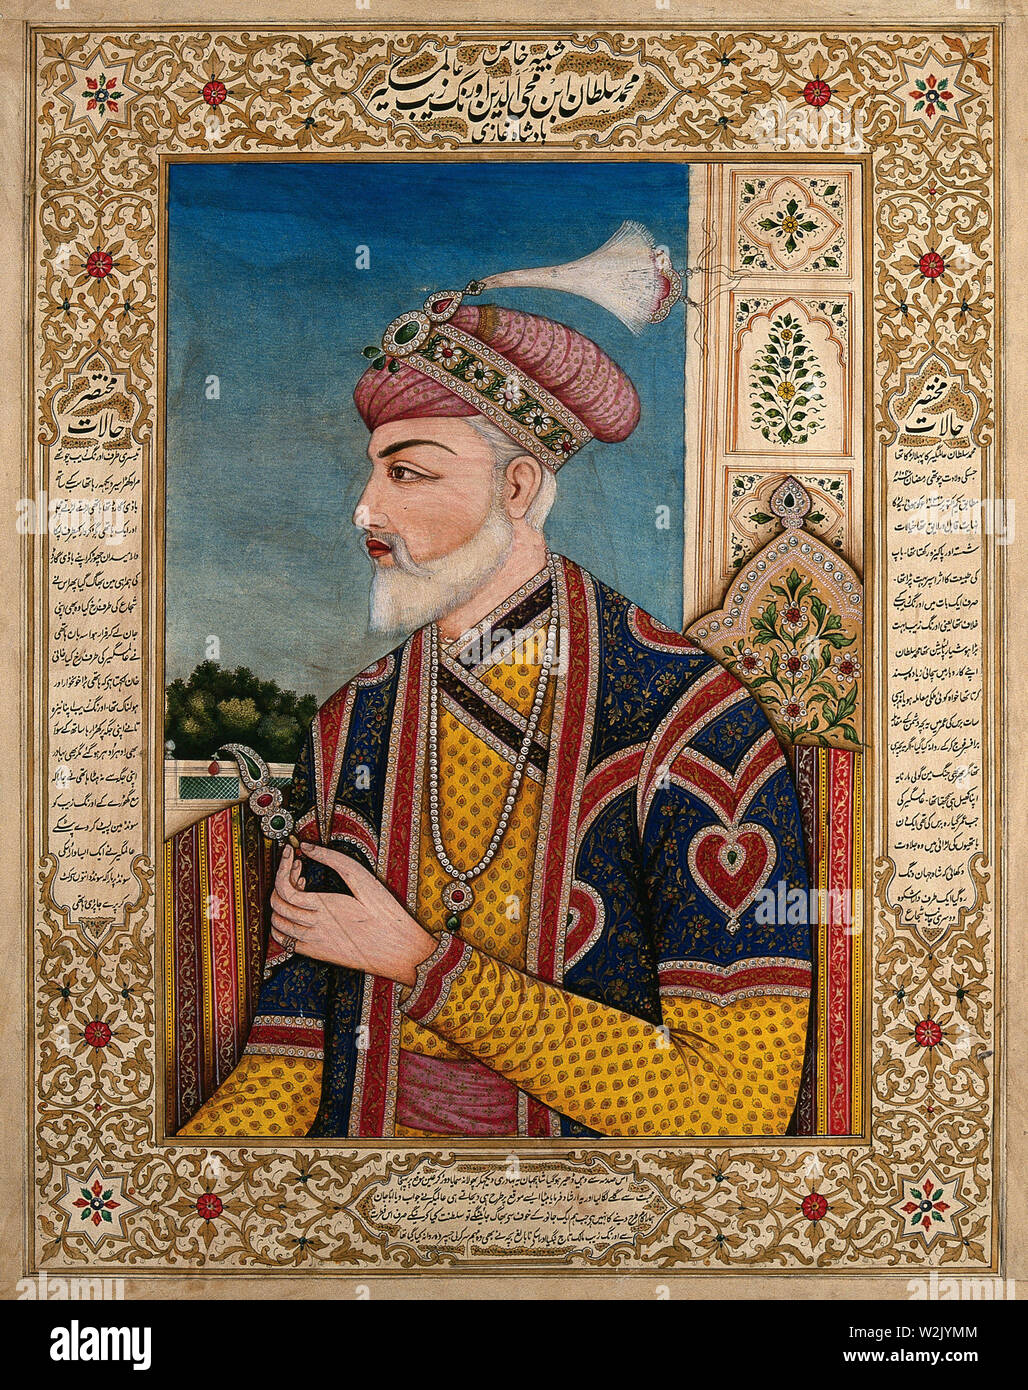 A Mughal emperor or member of a royal family holding a turban ornament in profile. Gouache painting by an Indian painter. Stock Photo